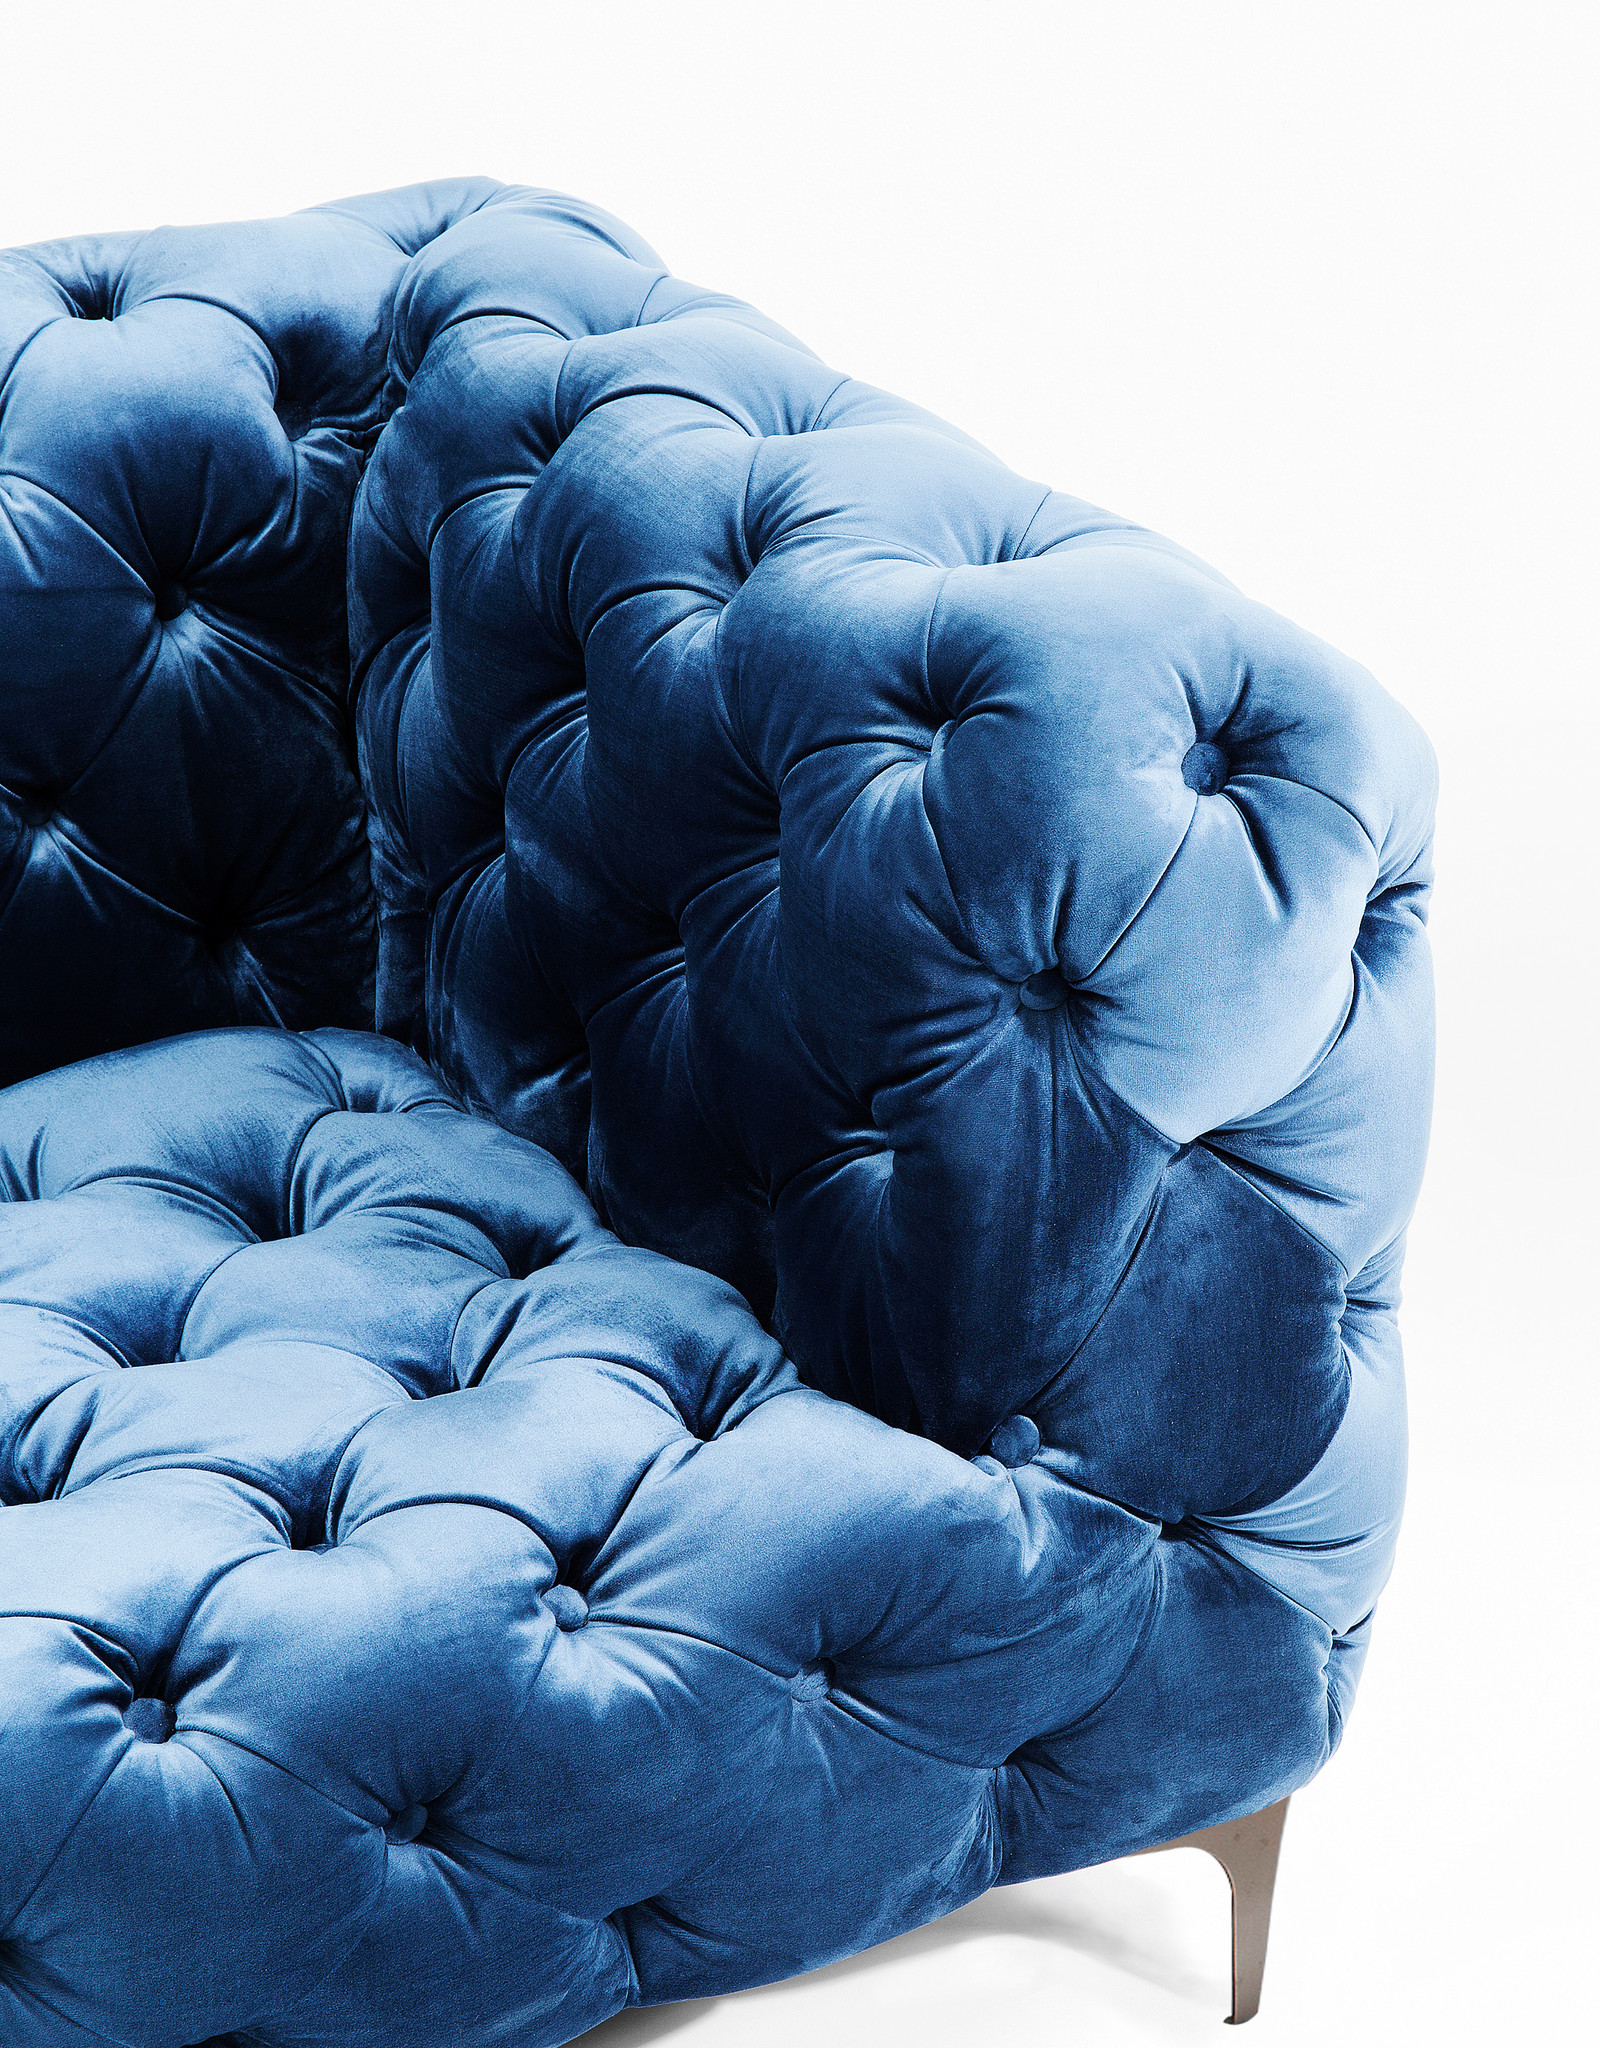 KARE DESIGN Sofa Look 180cm Velvet Blue